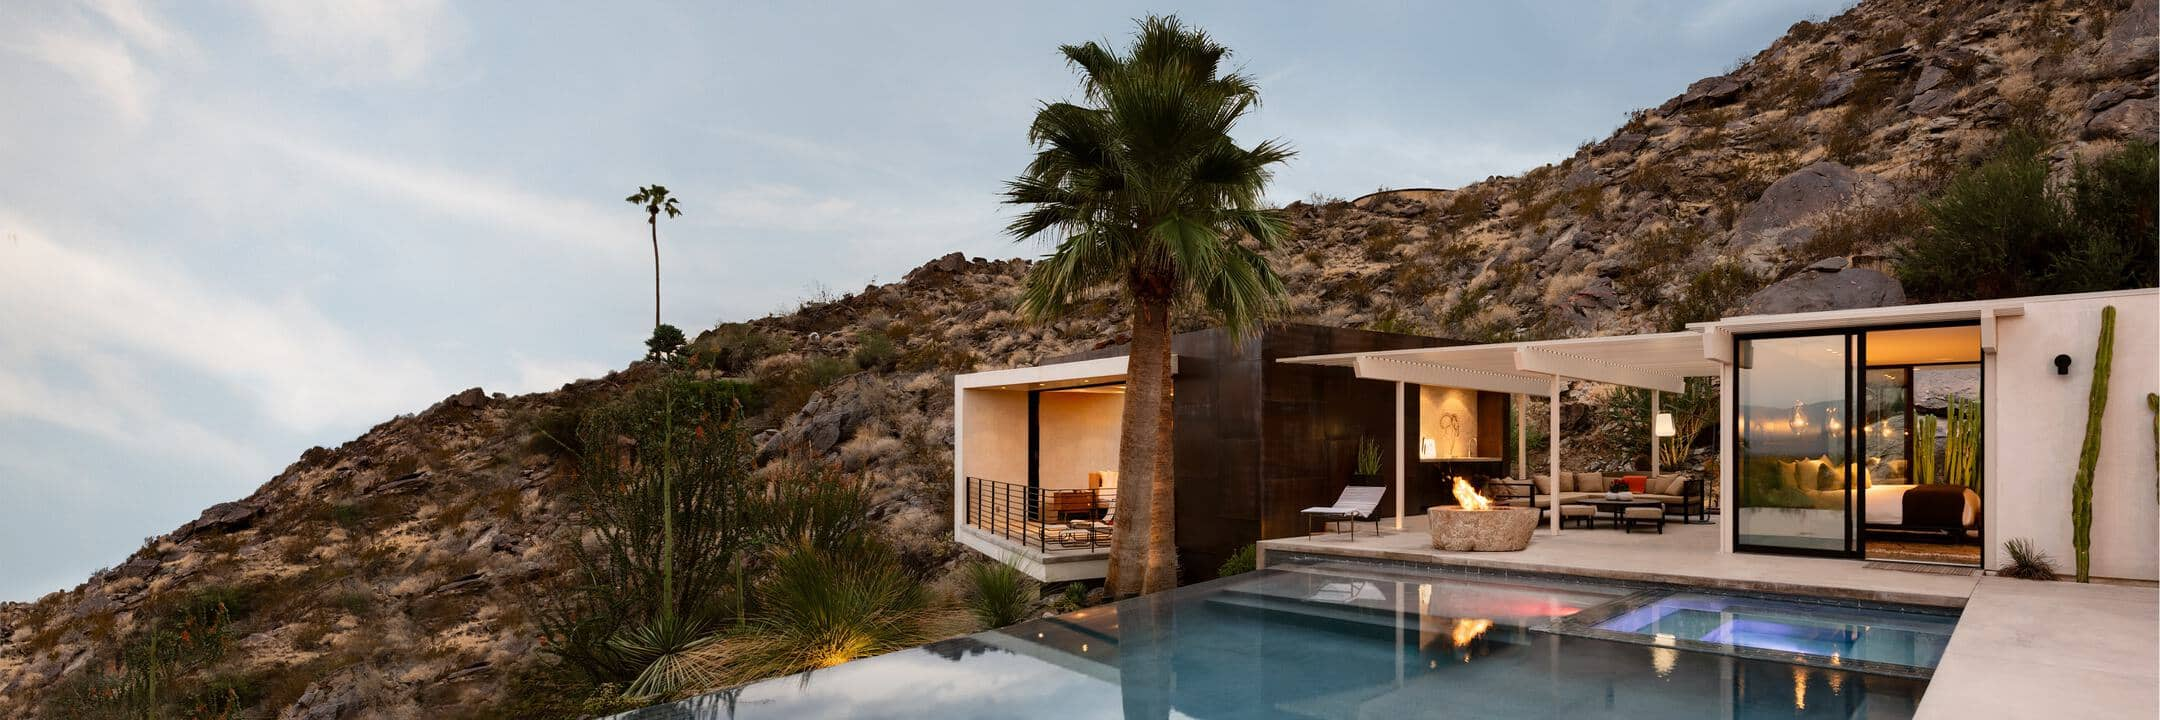 Luxury rentals in Palm Springs